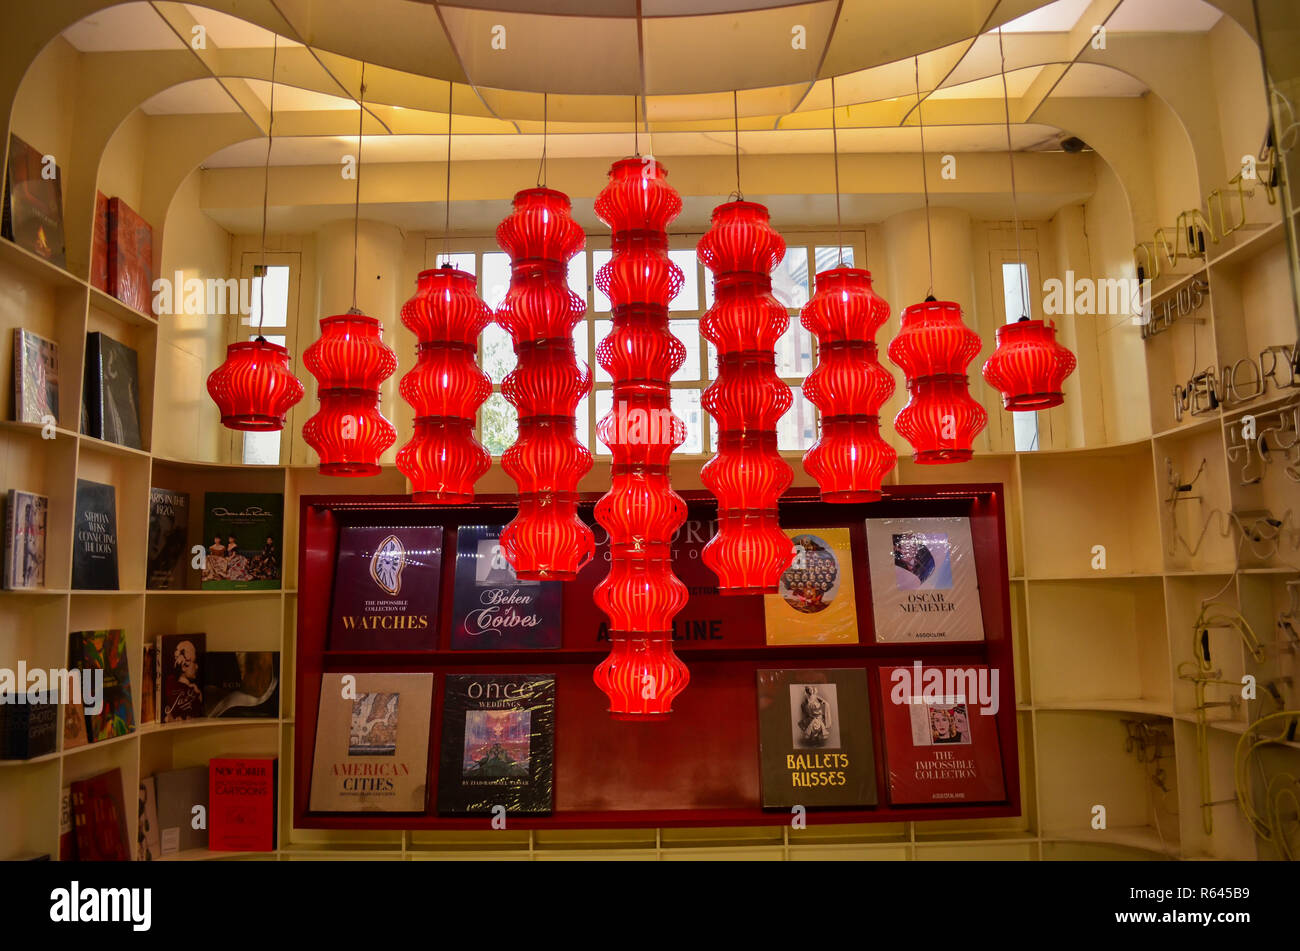 Hanging Lanterns Christmas Decorations At A Book Store In Connaught Place Delhi India Stock Photo Alamy